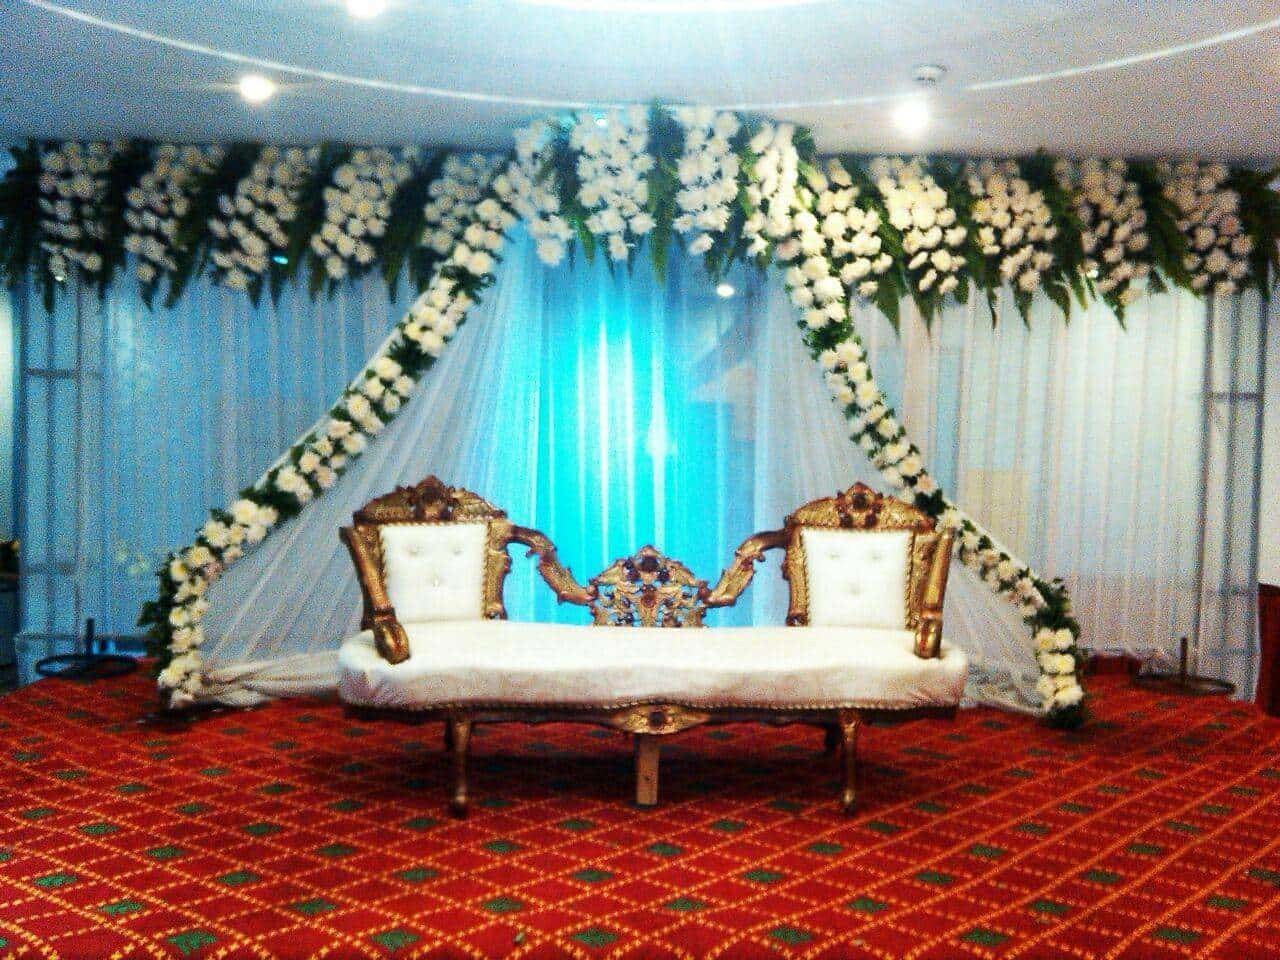 hotel rajshree chandigarh flower decoration hotel rajshree photos industrial area phase i chandigarh banquet halls